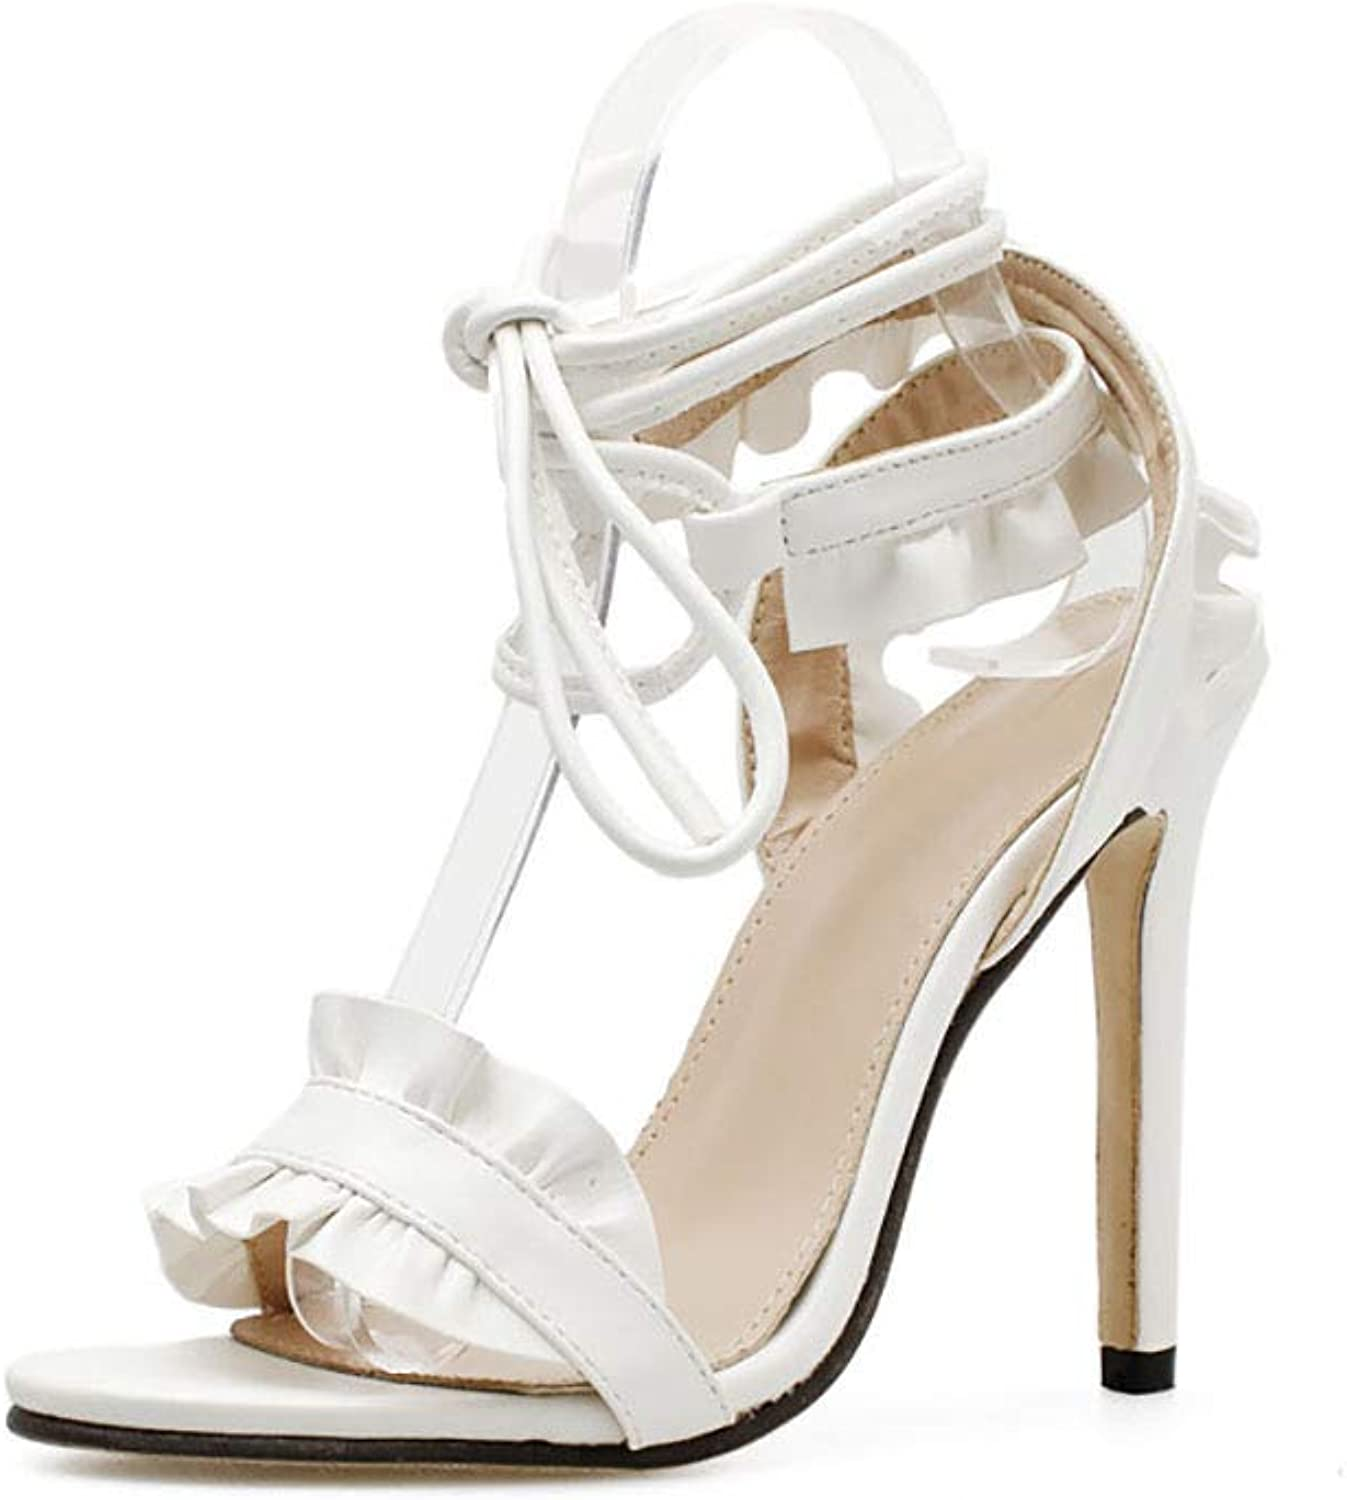 Womens Lace Up Sandals, Women's Open Toe Lace Up Sandals Roman Sexy Strappy Sandals Openwork Sandals Ladies Womens Knee High Sandals,36